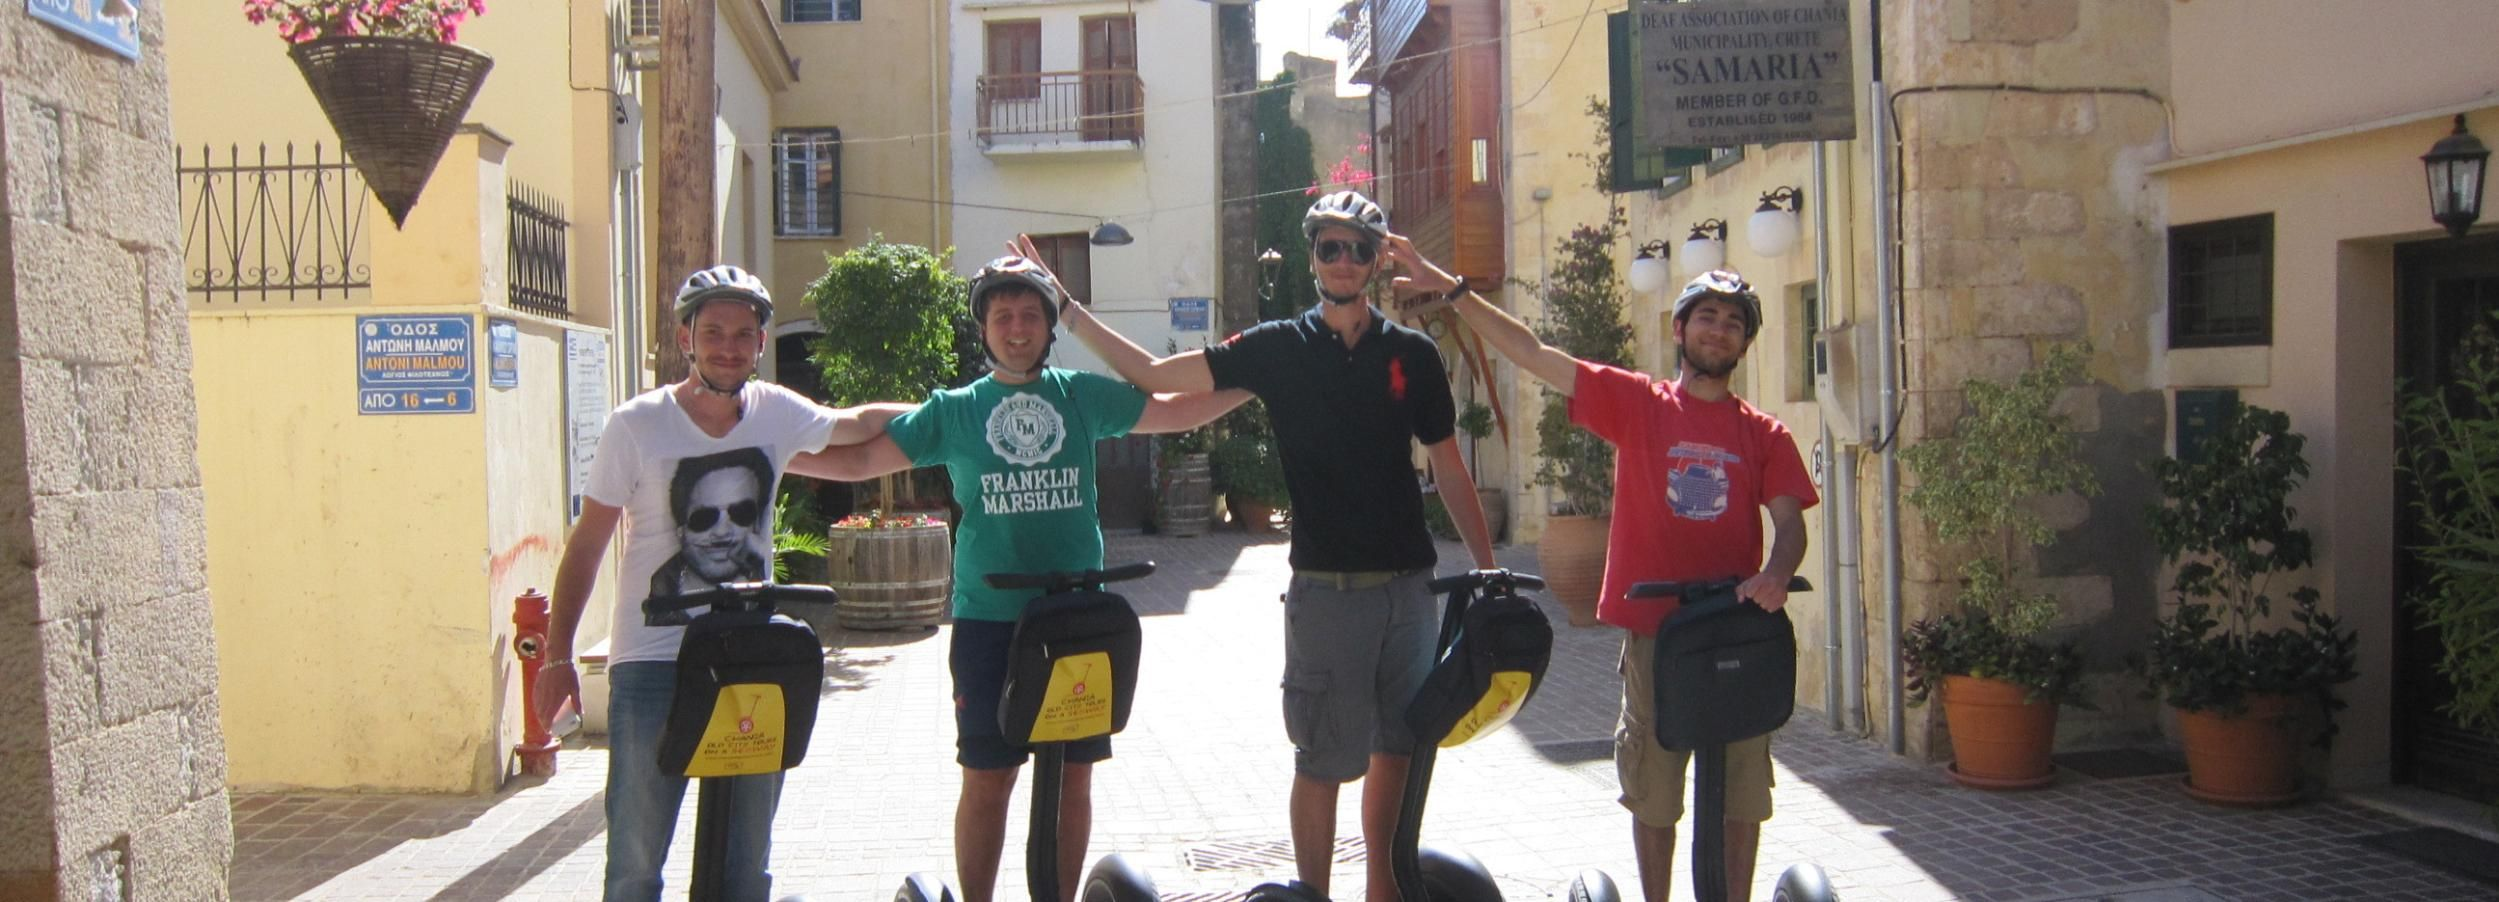 Chania: Old City Discovery Guided Segway Tour